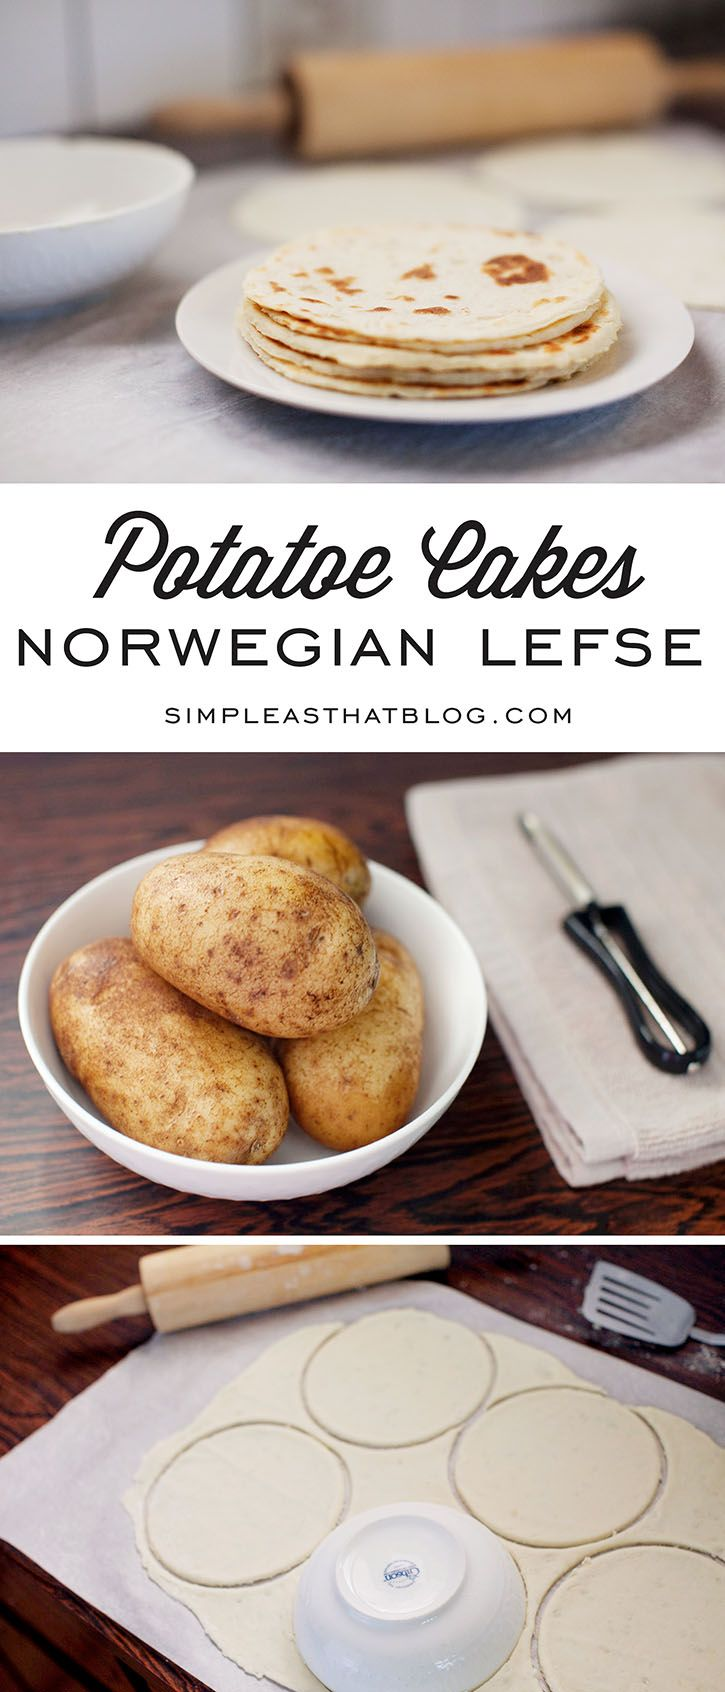 We've enjoyed this traditional Norwegian Lefse or Potatoe Cakes recipe in my family for years! They're simple and delicious and the perfect way to use up those leftover mashed potatoes from Thanksgiving dinner!